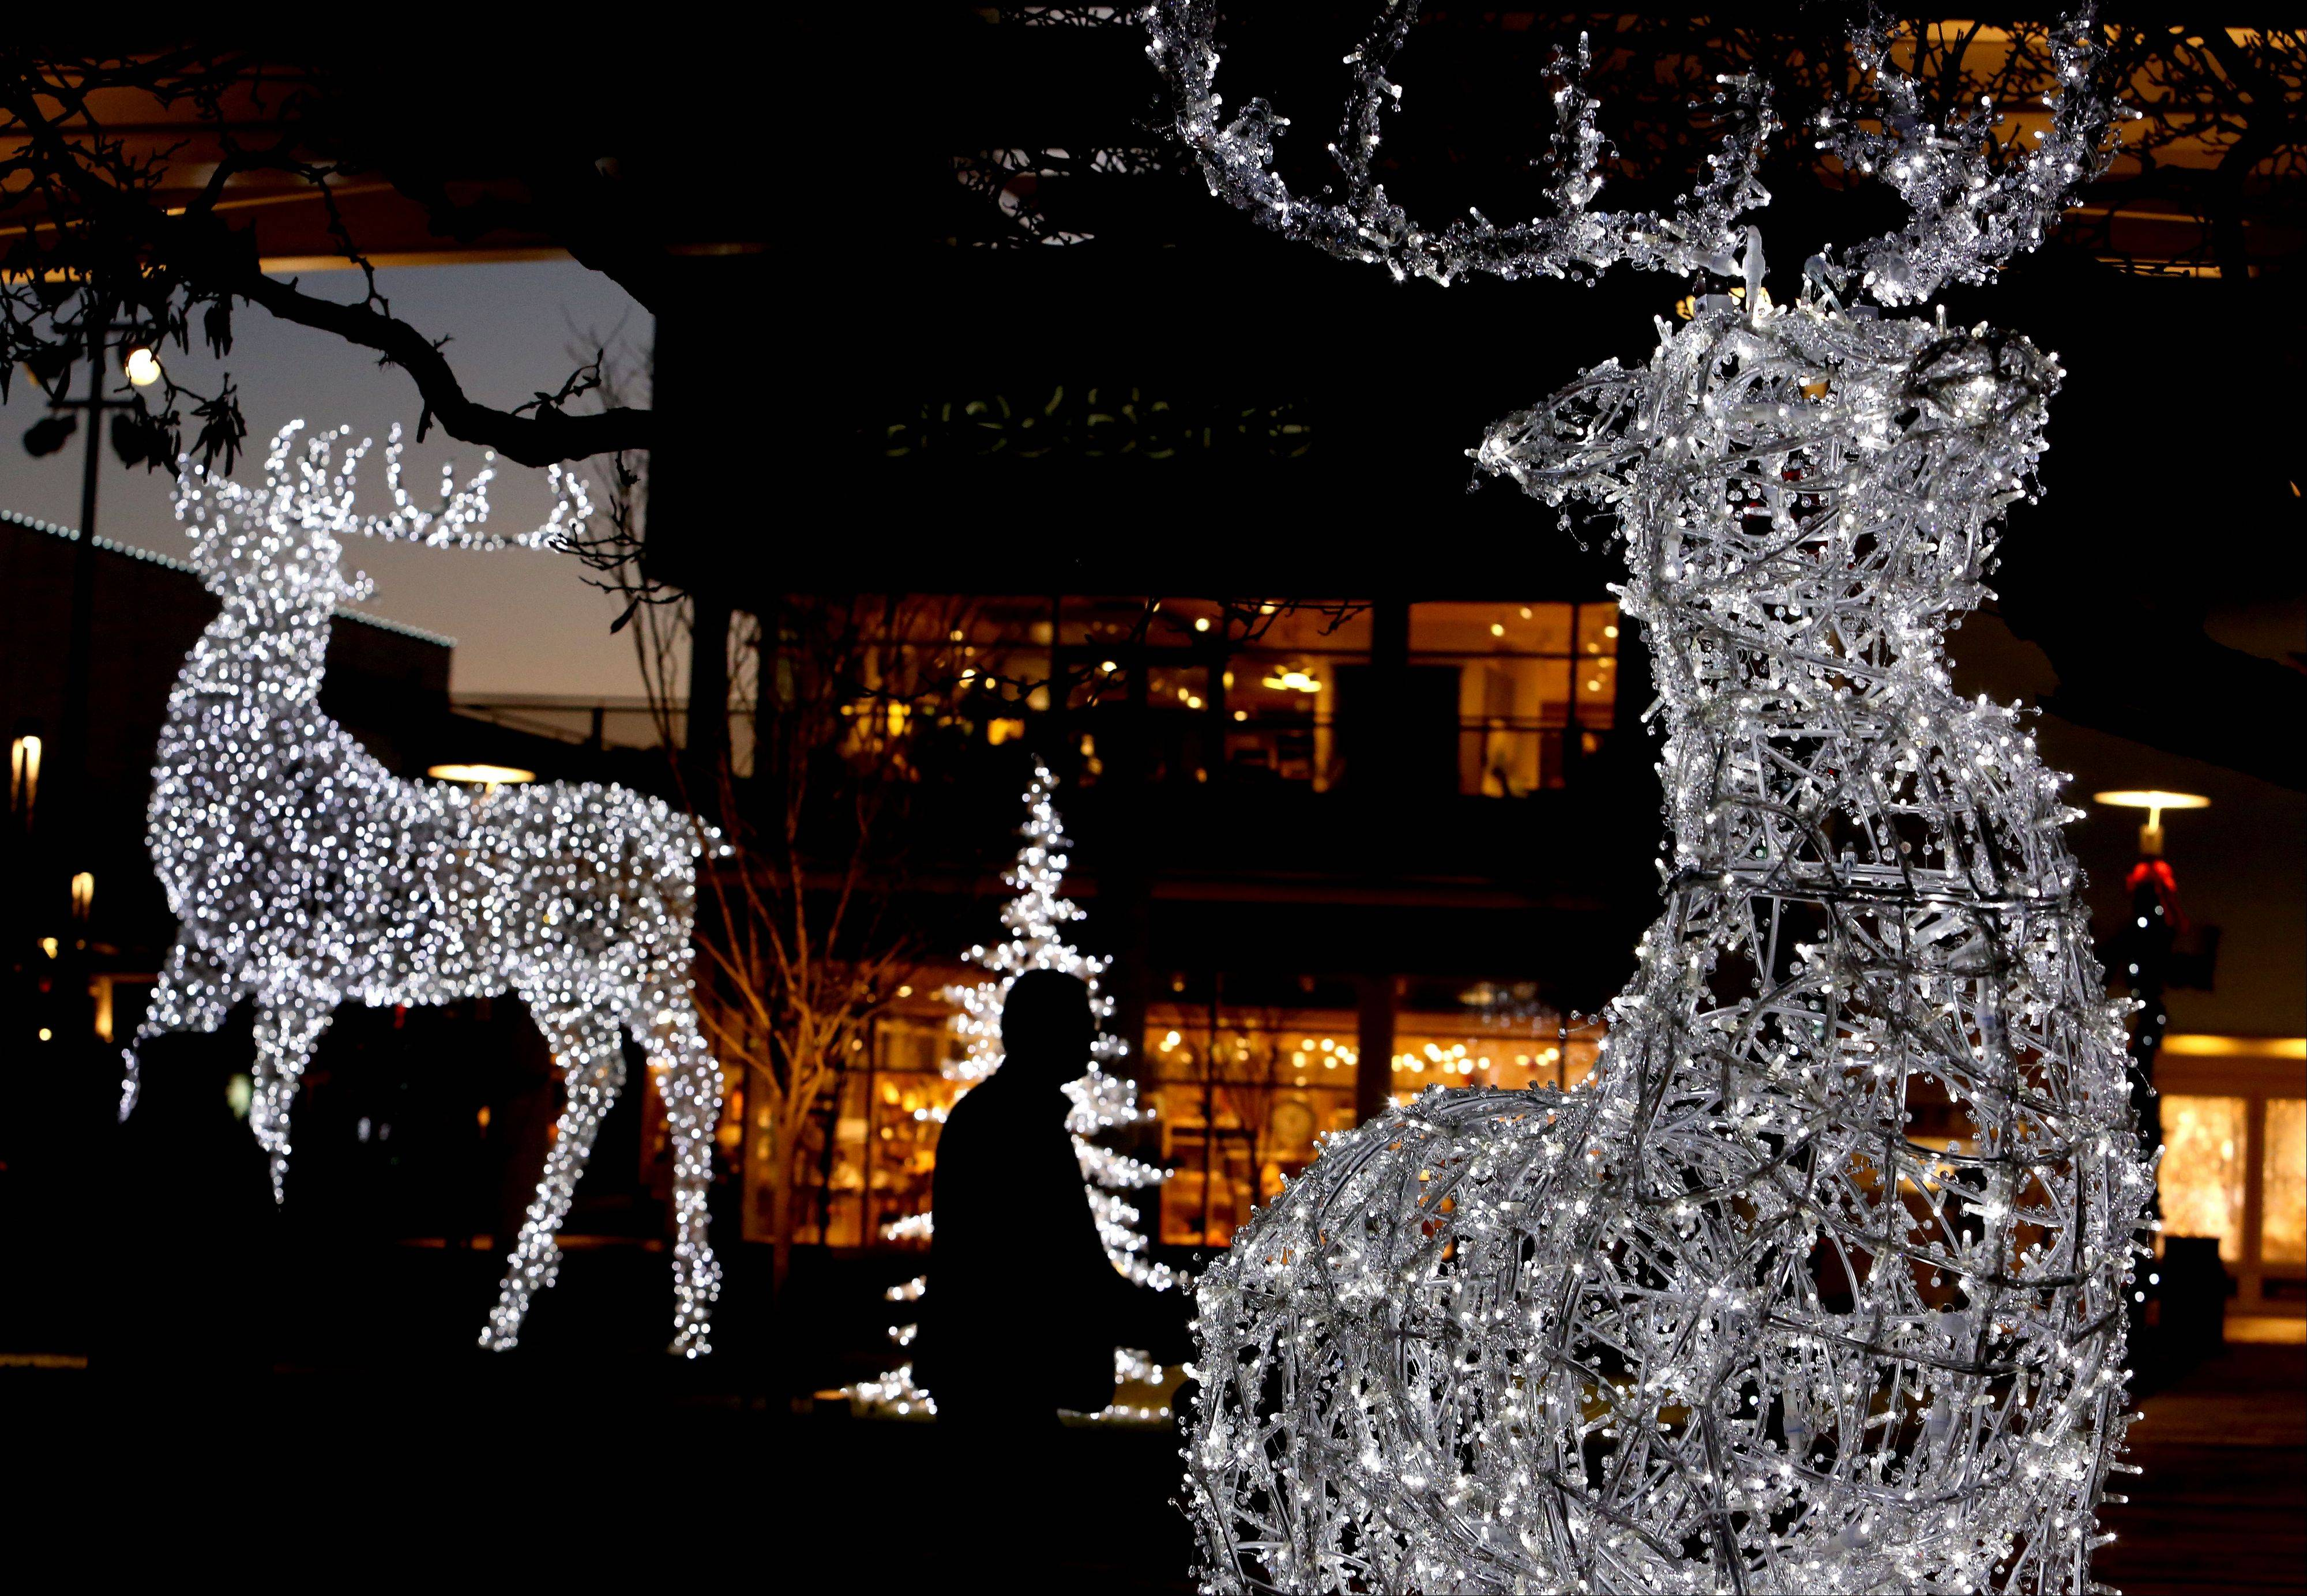 Thousands of lights will greet visitors this holiday season at Oakbrook Center as the outdoor mall celebrates the completion of two years of renovations. The center is sponsoring a �Holiday Spectacular� on Friday night as a sort of coming-out party.